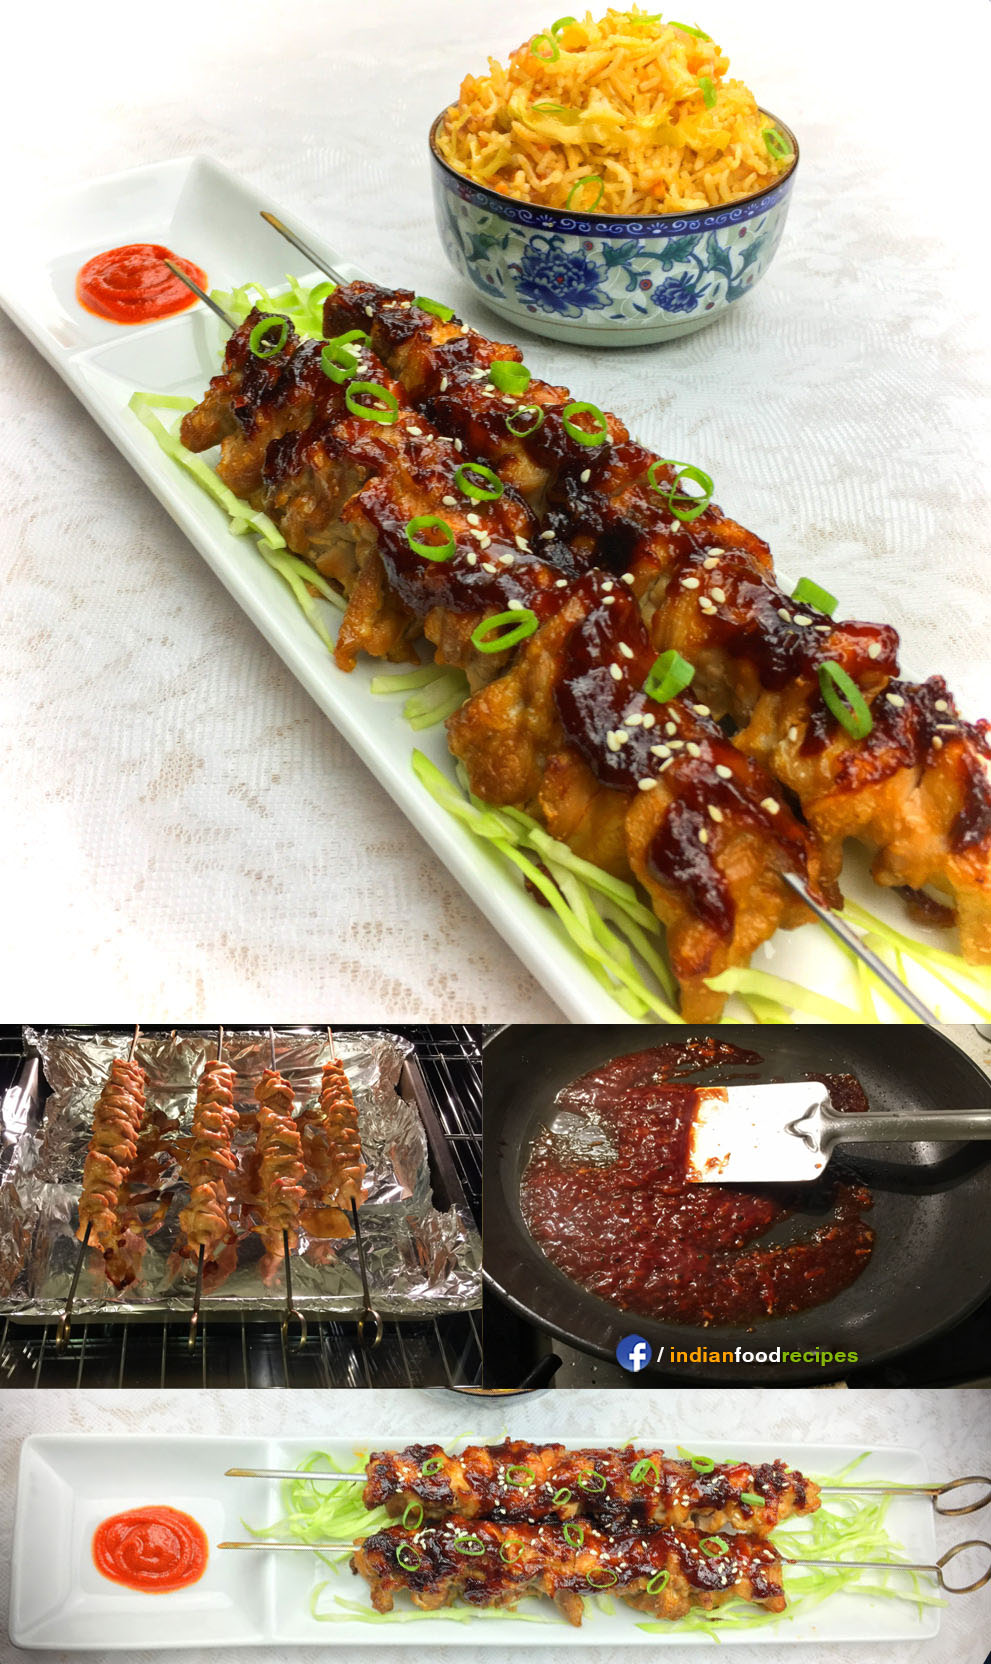 Baked Teriyaki Chicken (Indo-Japanese) recipe step by step pictures